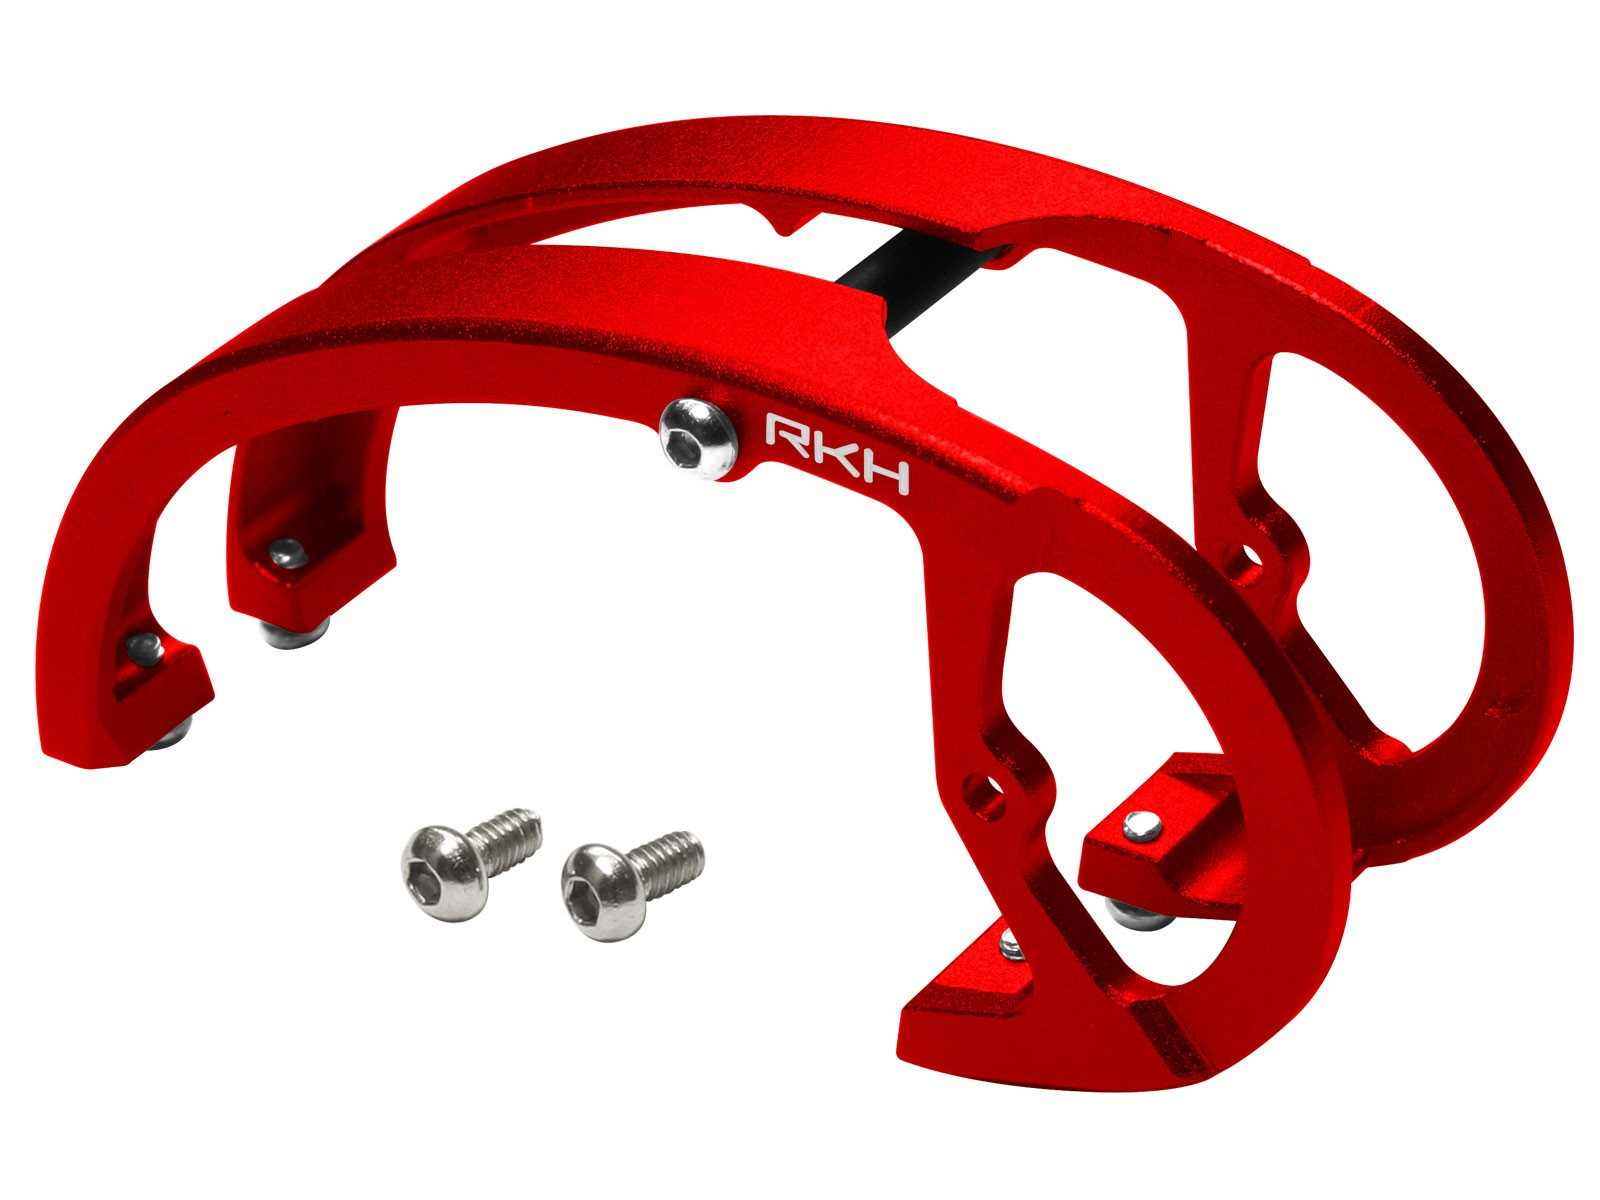 RKH CNC Aluminum Canopy Camera Mount Set (Red) - EMAX Babyhawk R